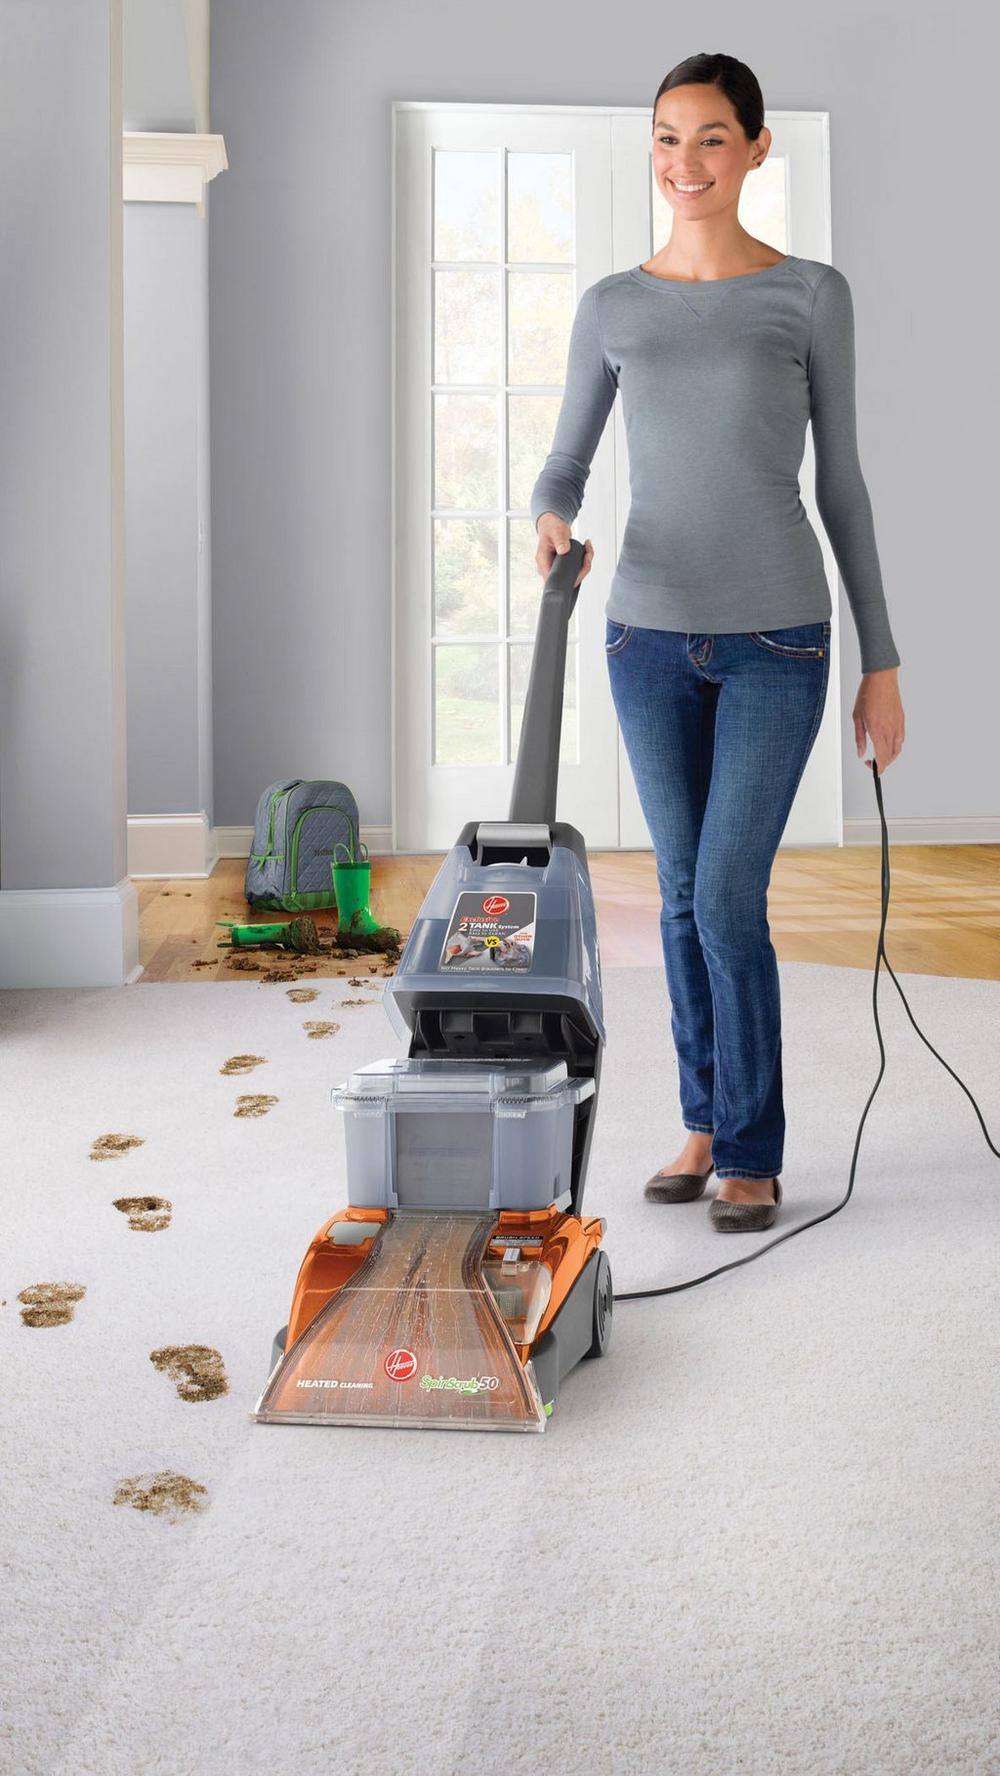 Reconditioned Steamvac Carpet Cleaner3